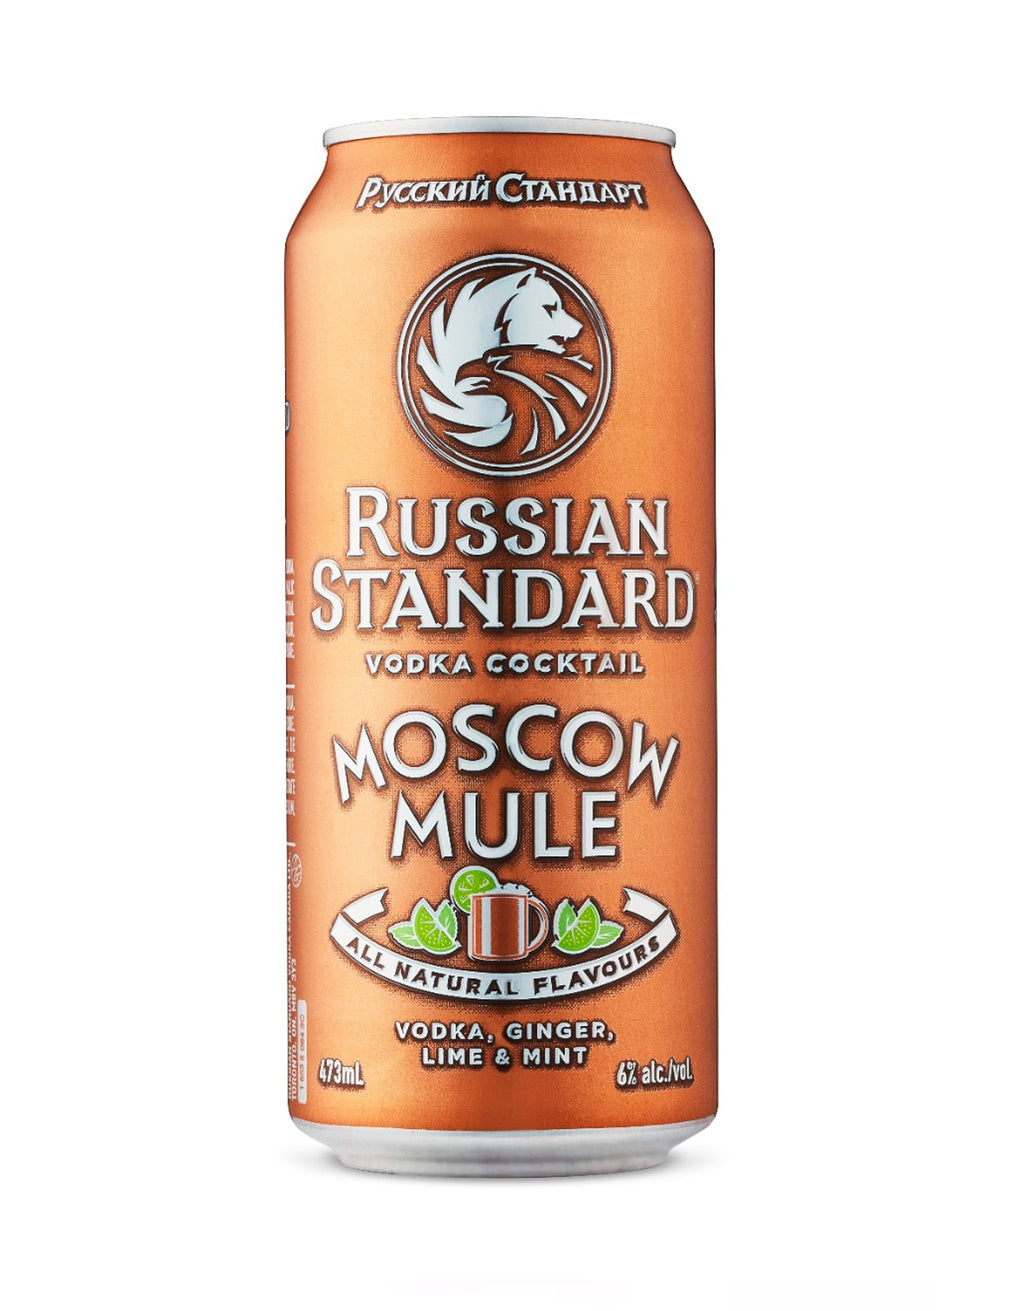 Russian Standard Moscow Mule 473 ml - 6 Cans